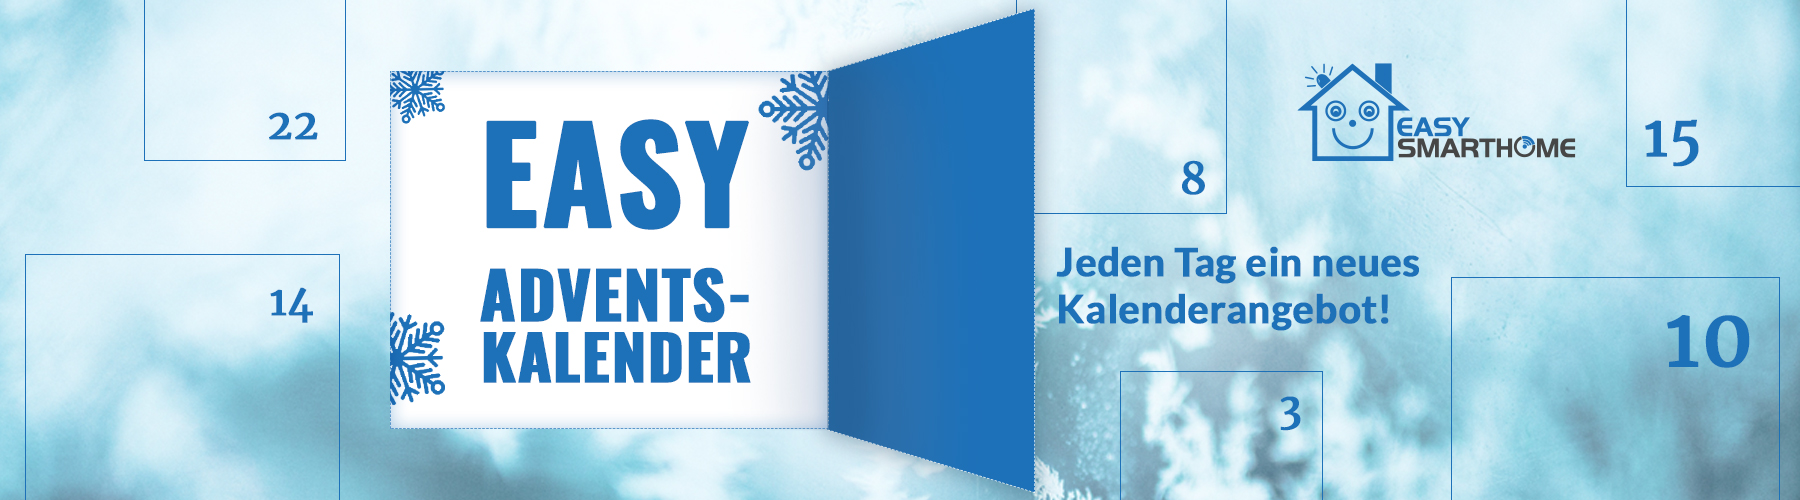 EASY Adventskalender